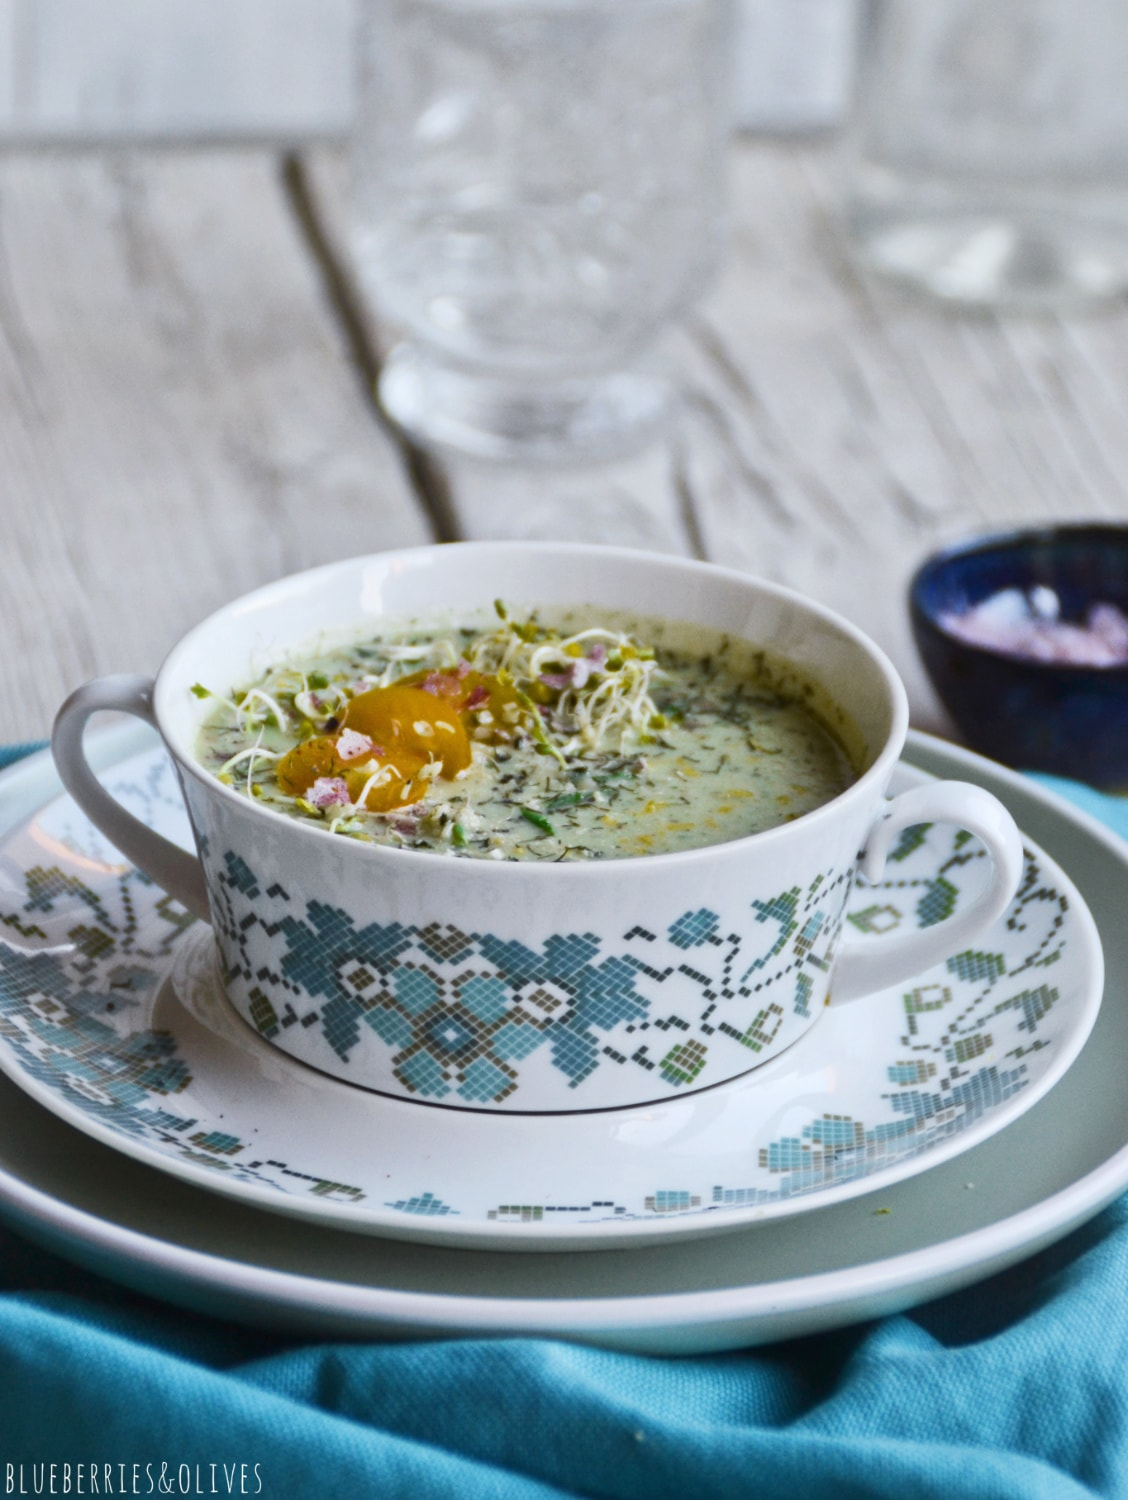 cold raw soup in vintage colorful porcelain bowl, blue tablecloth